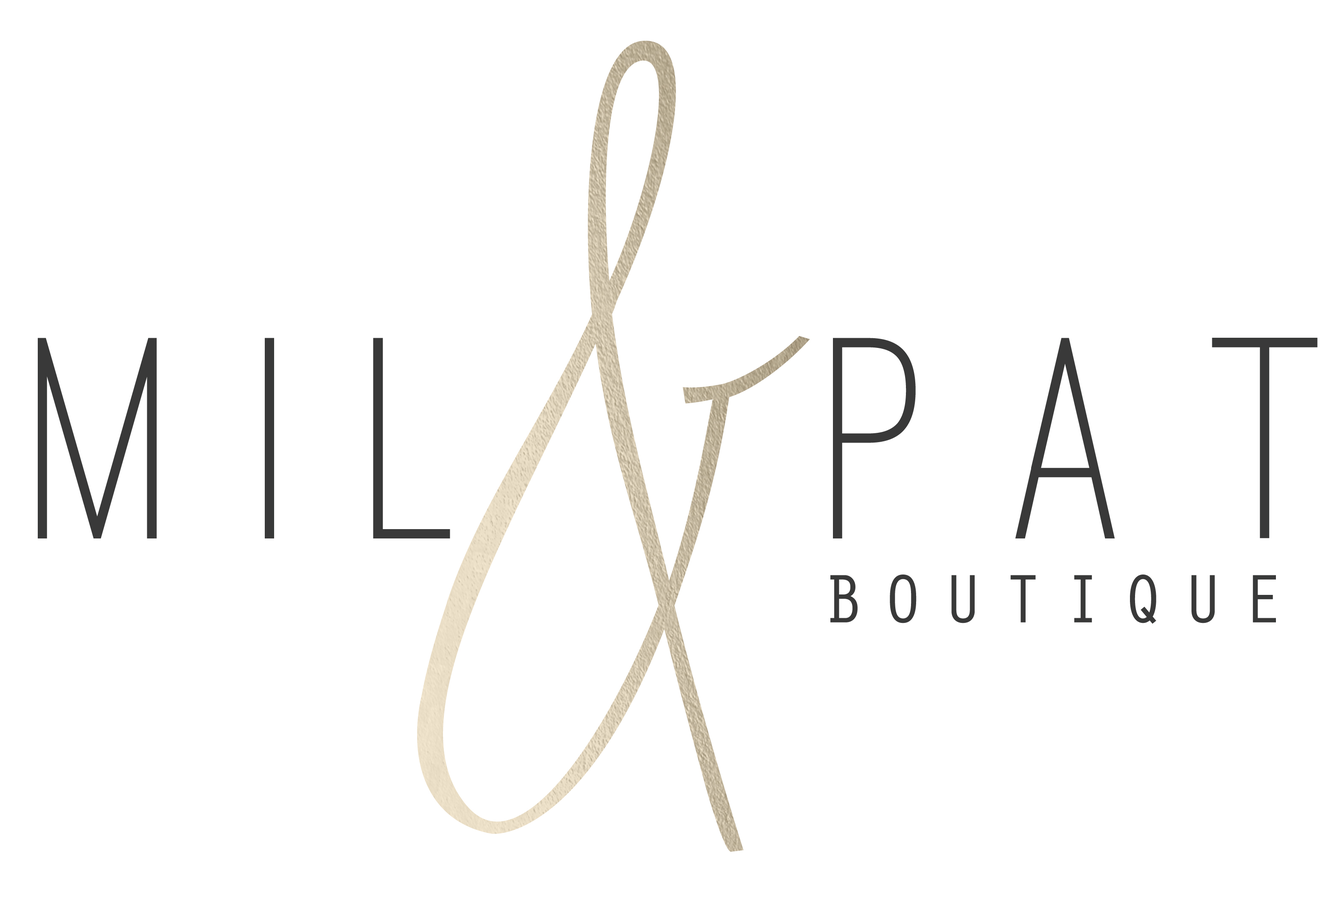 Mil & Pat Boutique